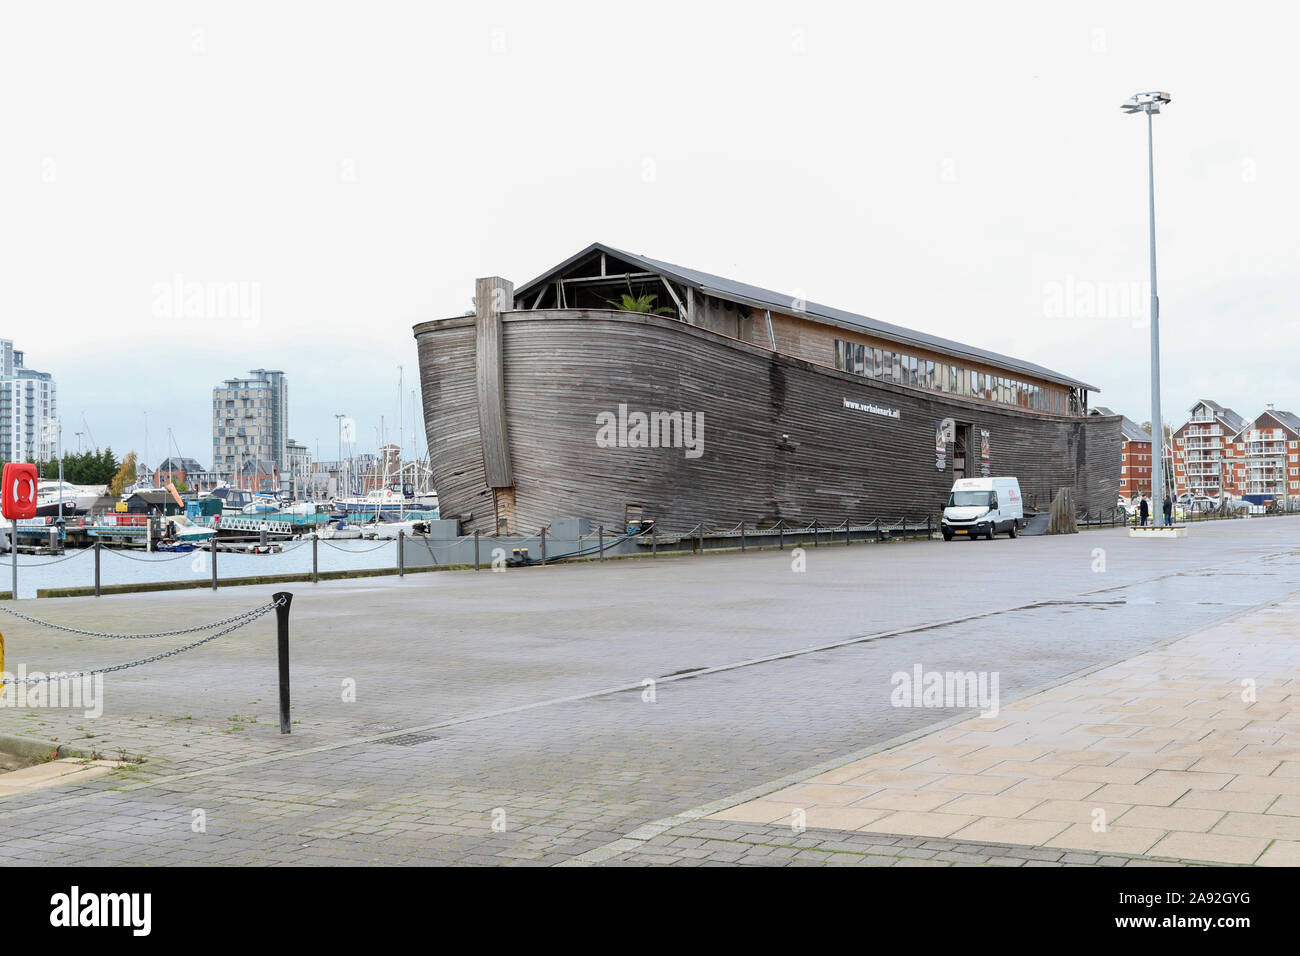 Ipswich, Suffolk, UK. 12th Nov, 2019. A 70m replica of Noah's Ark has arrived in Ipswich, Suffolk. Inside you can find a museum which includes a 12ft tall Tree of Life. The ark is the creation of Dutch artist and TV producer Sir Aad Peters. It will stay in Ipswich for 3 months and will be open from Friday 15th of November. Credit: David Johnson/Alamy Live News Stock Photo